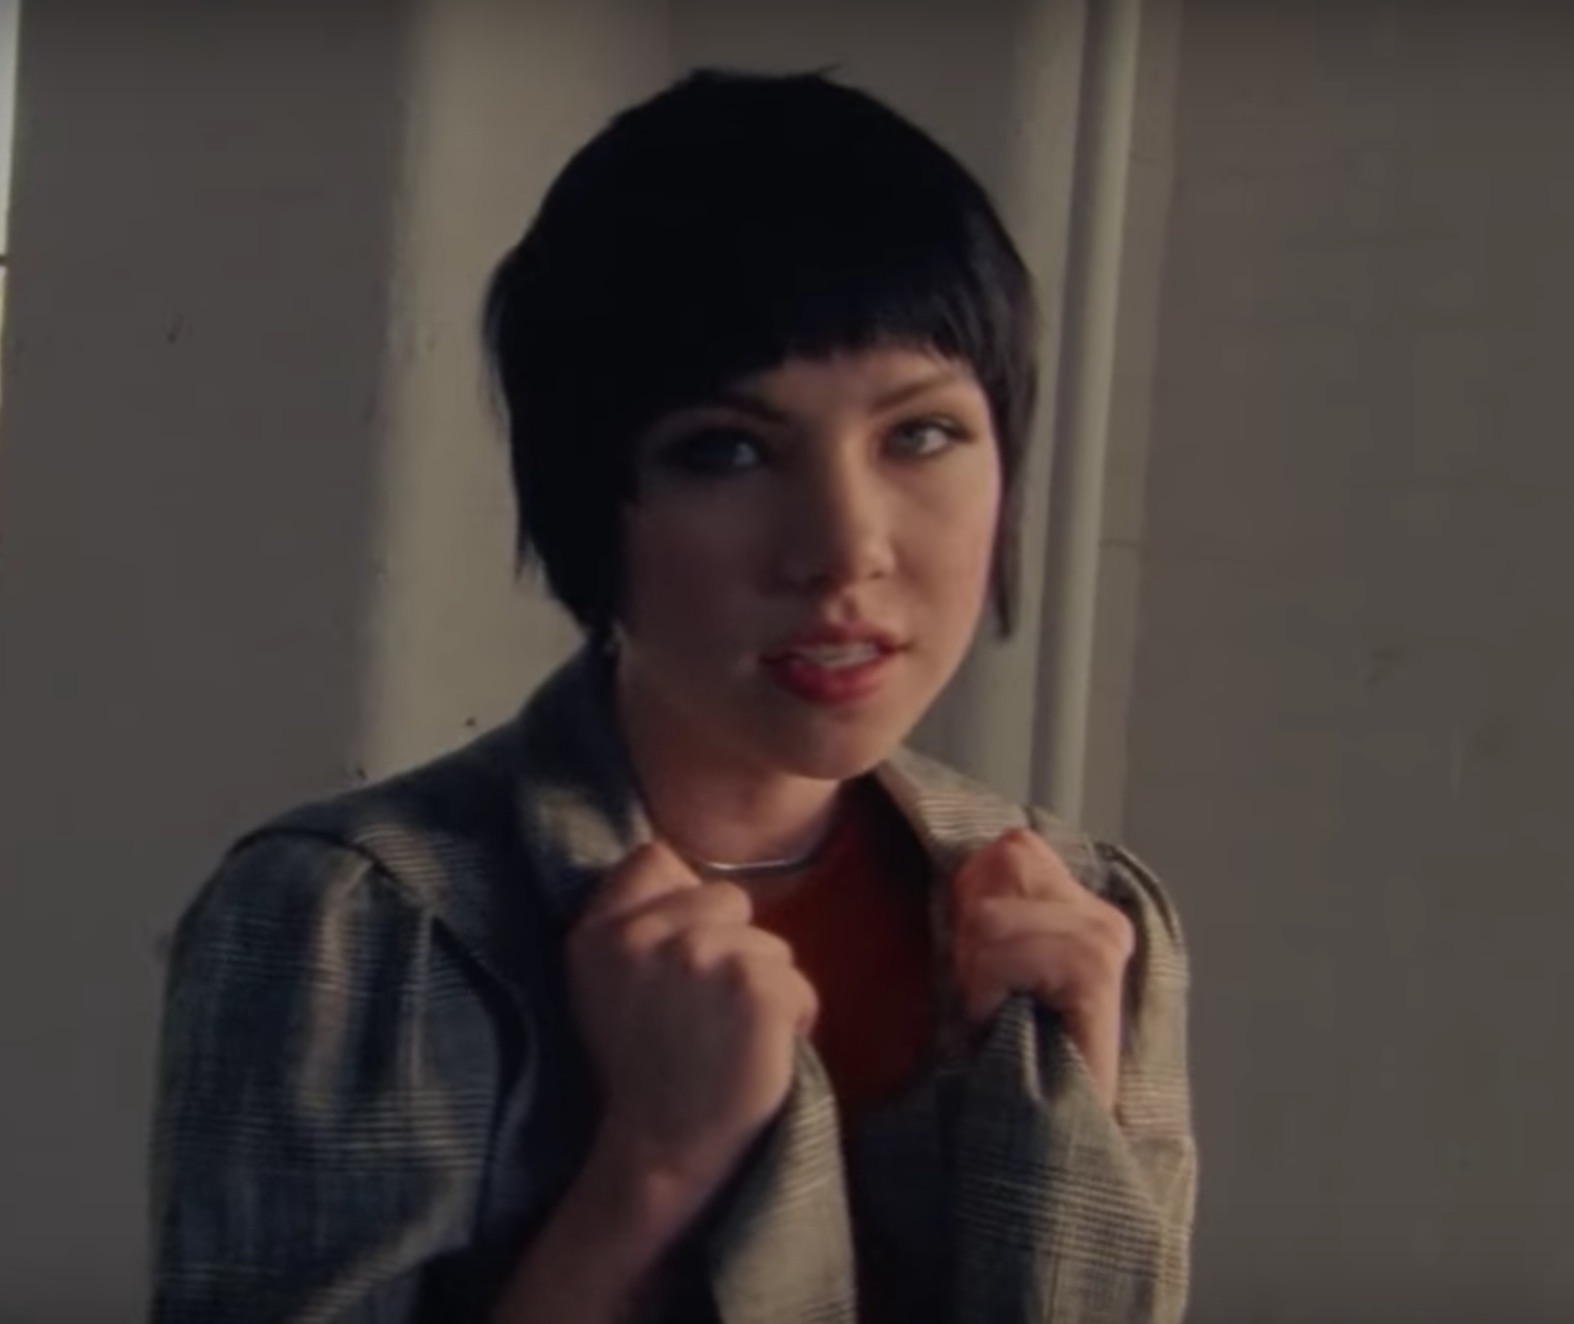 Blood Orange and Carly Rae Jepsen turned their duet into an amazing dance music video